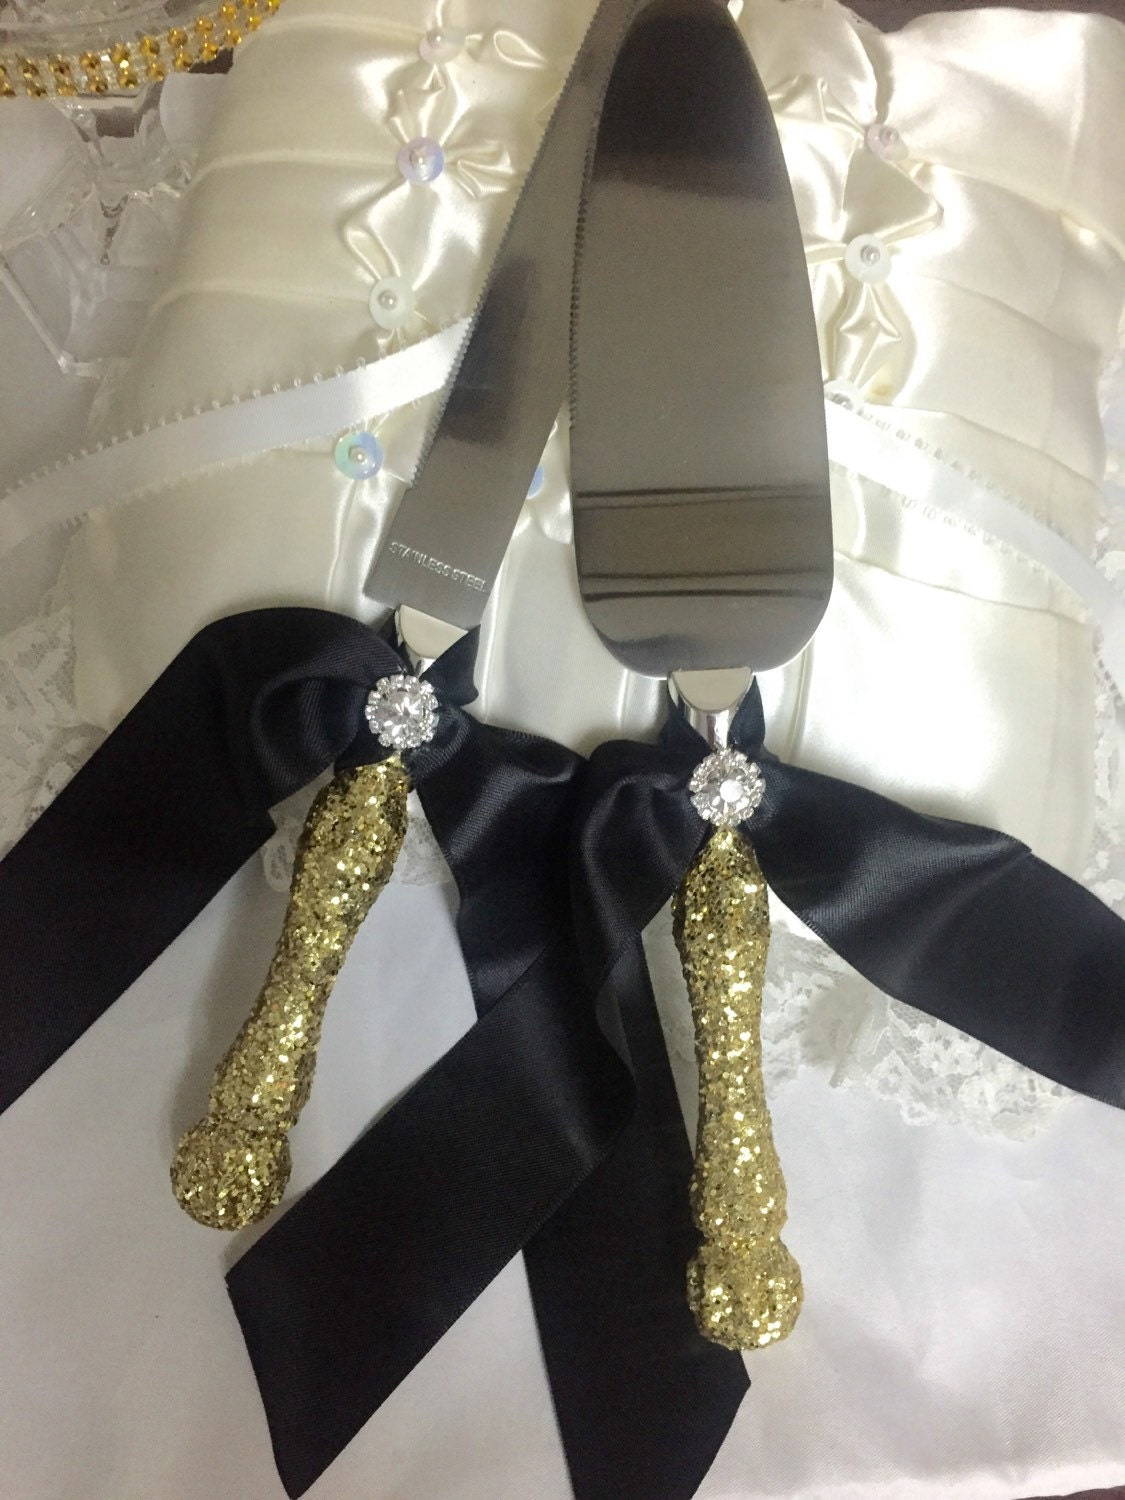 Gold and black wedding gold cake cutting set by